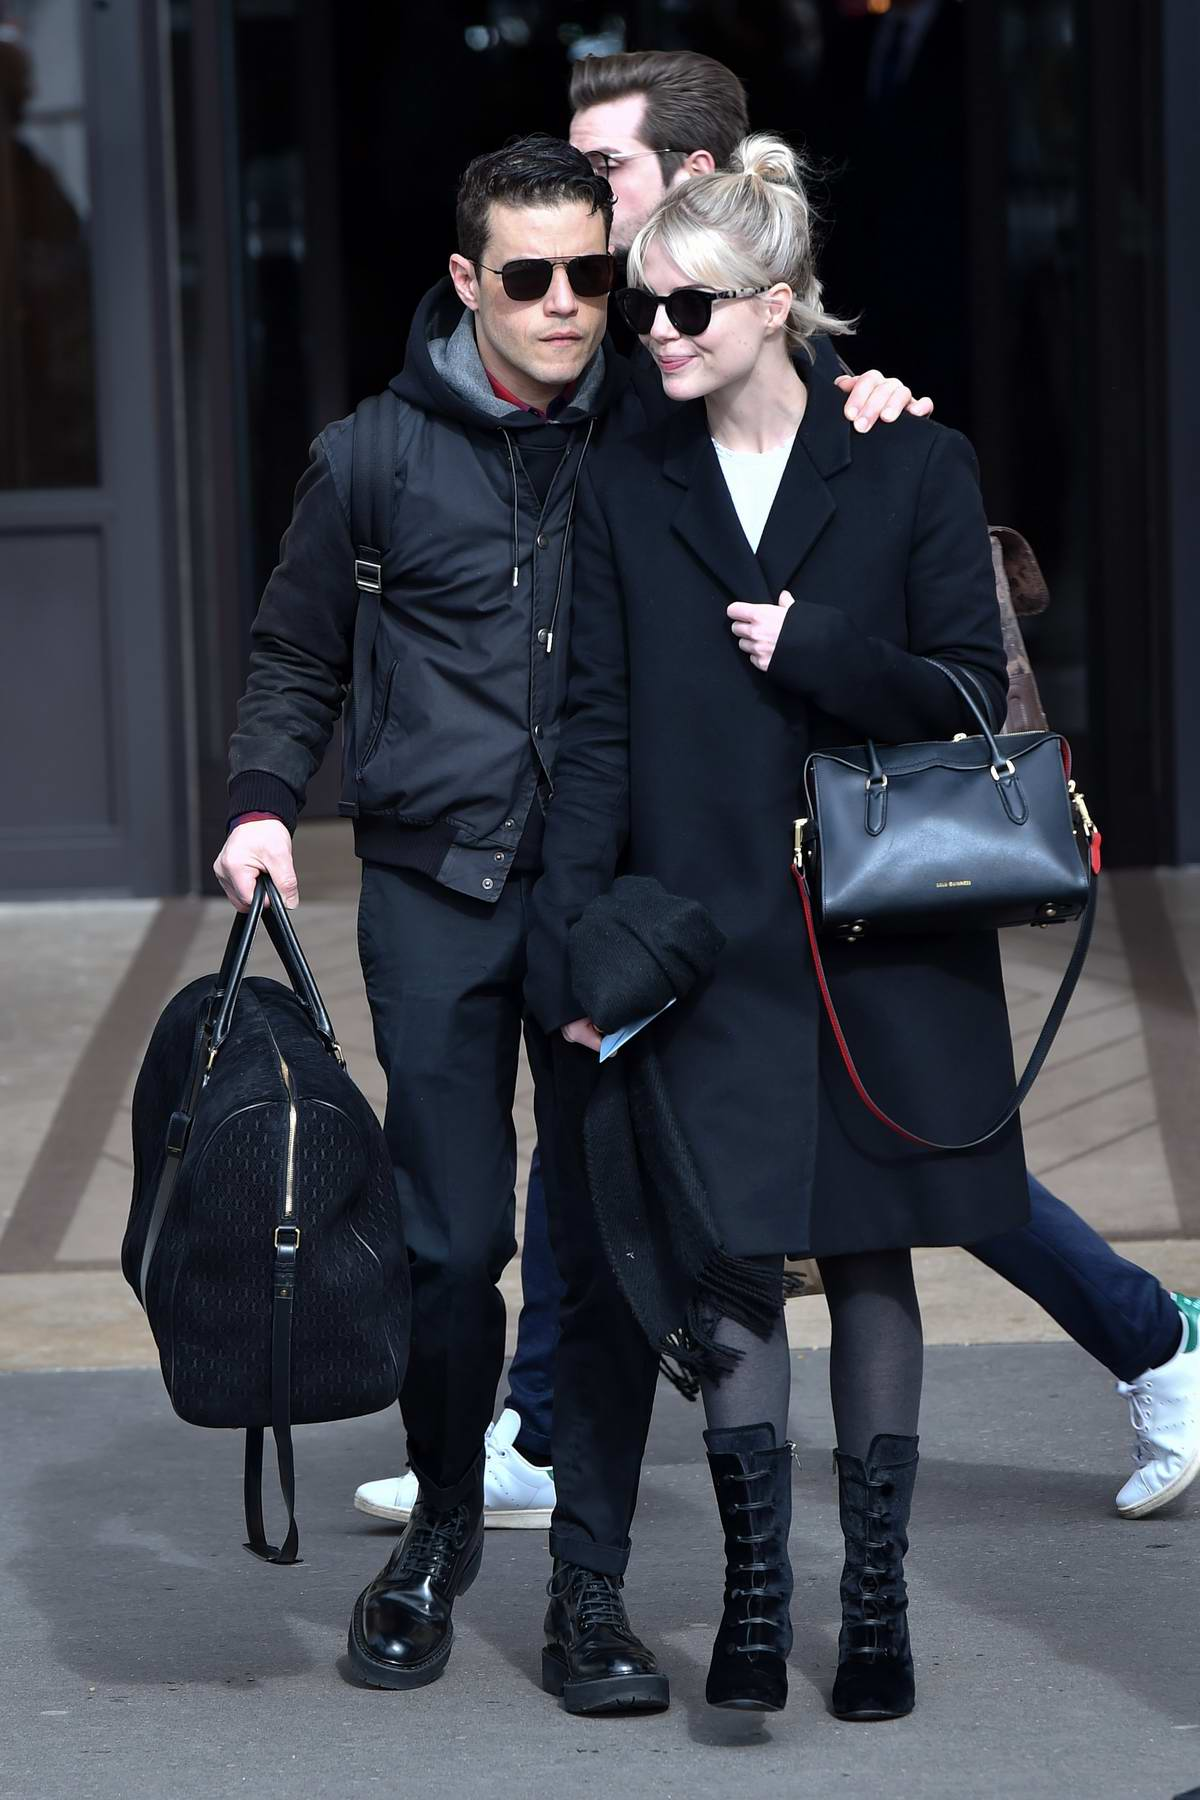 Lucy Boynton and Rami Malek seen leaving the Hôtel de Crillon in Paris, France